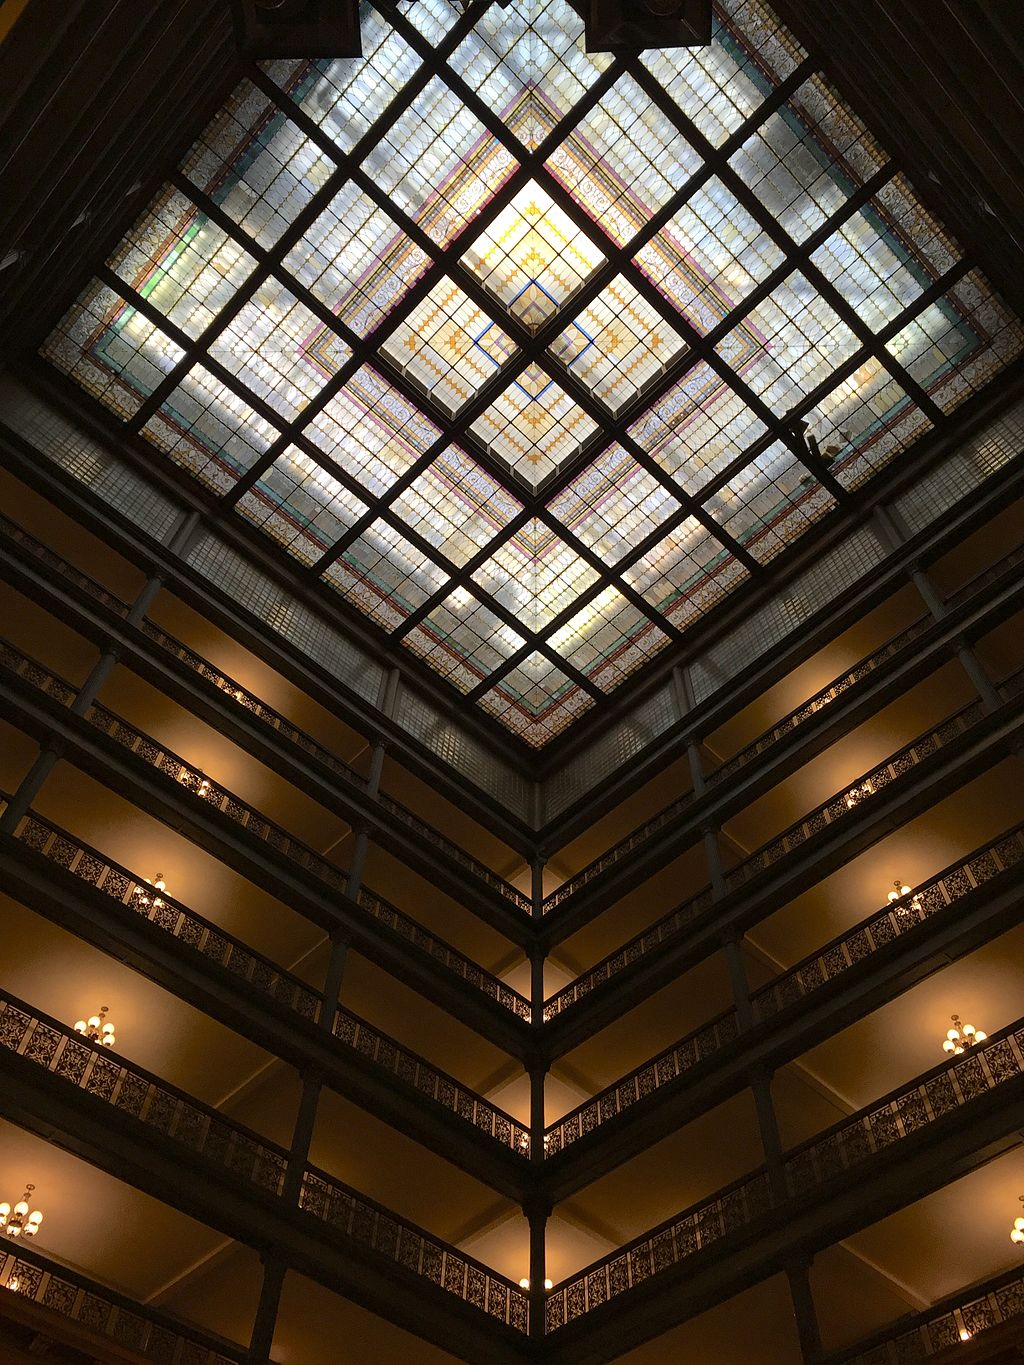 Brown Palace Hotel Atrium Stained Glass Ceiling